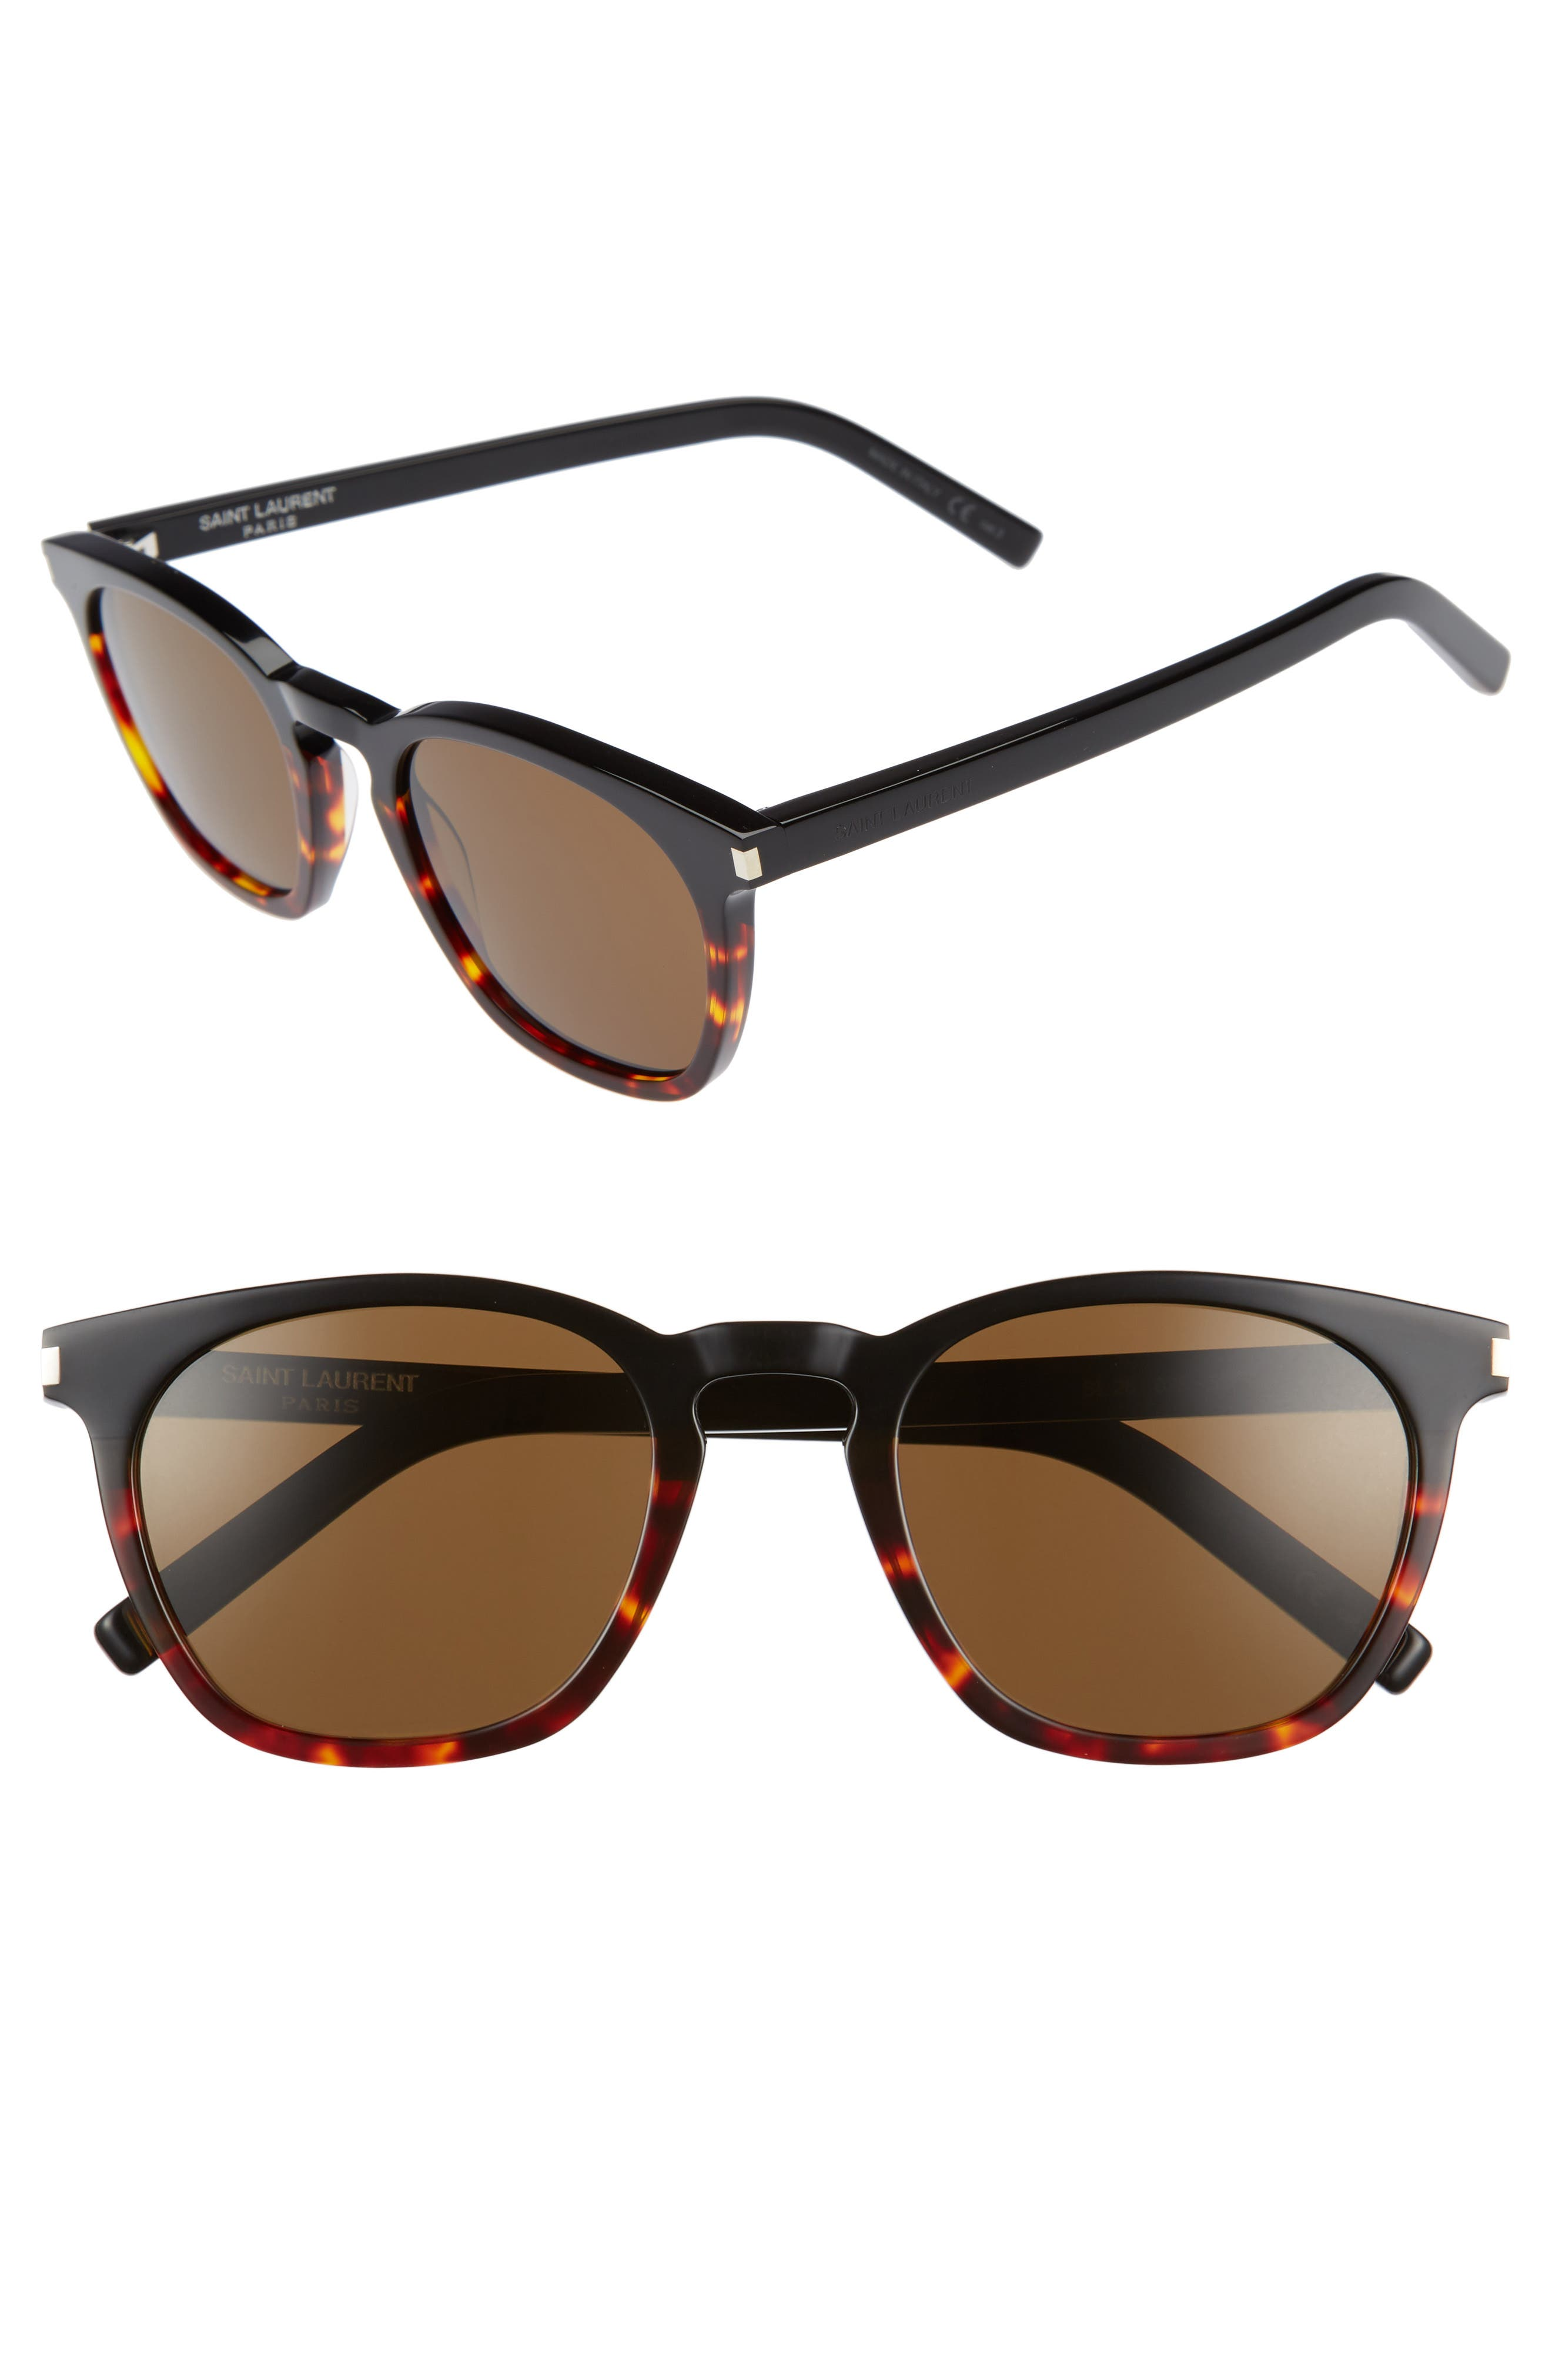 SL 28 51mm Keyhole Sunglasses,                             Main thumbnail 1, color,                             001